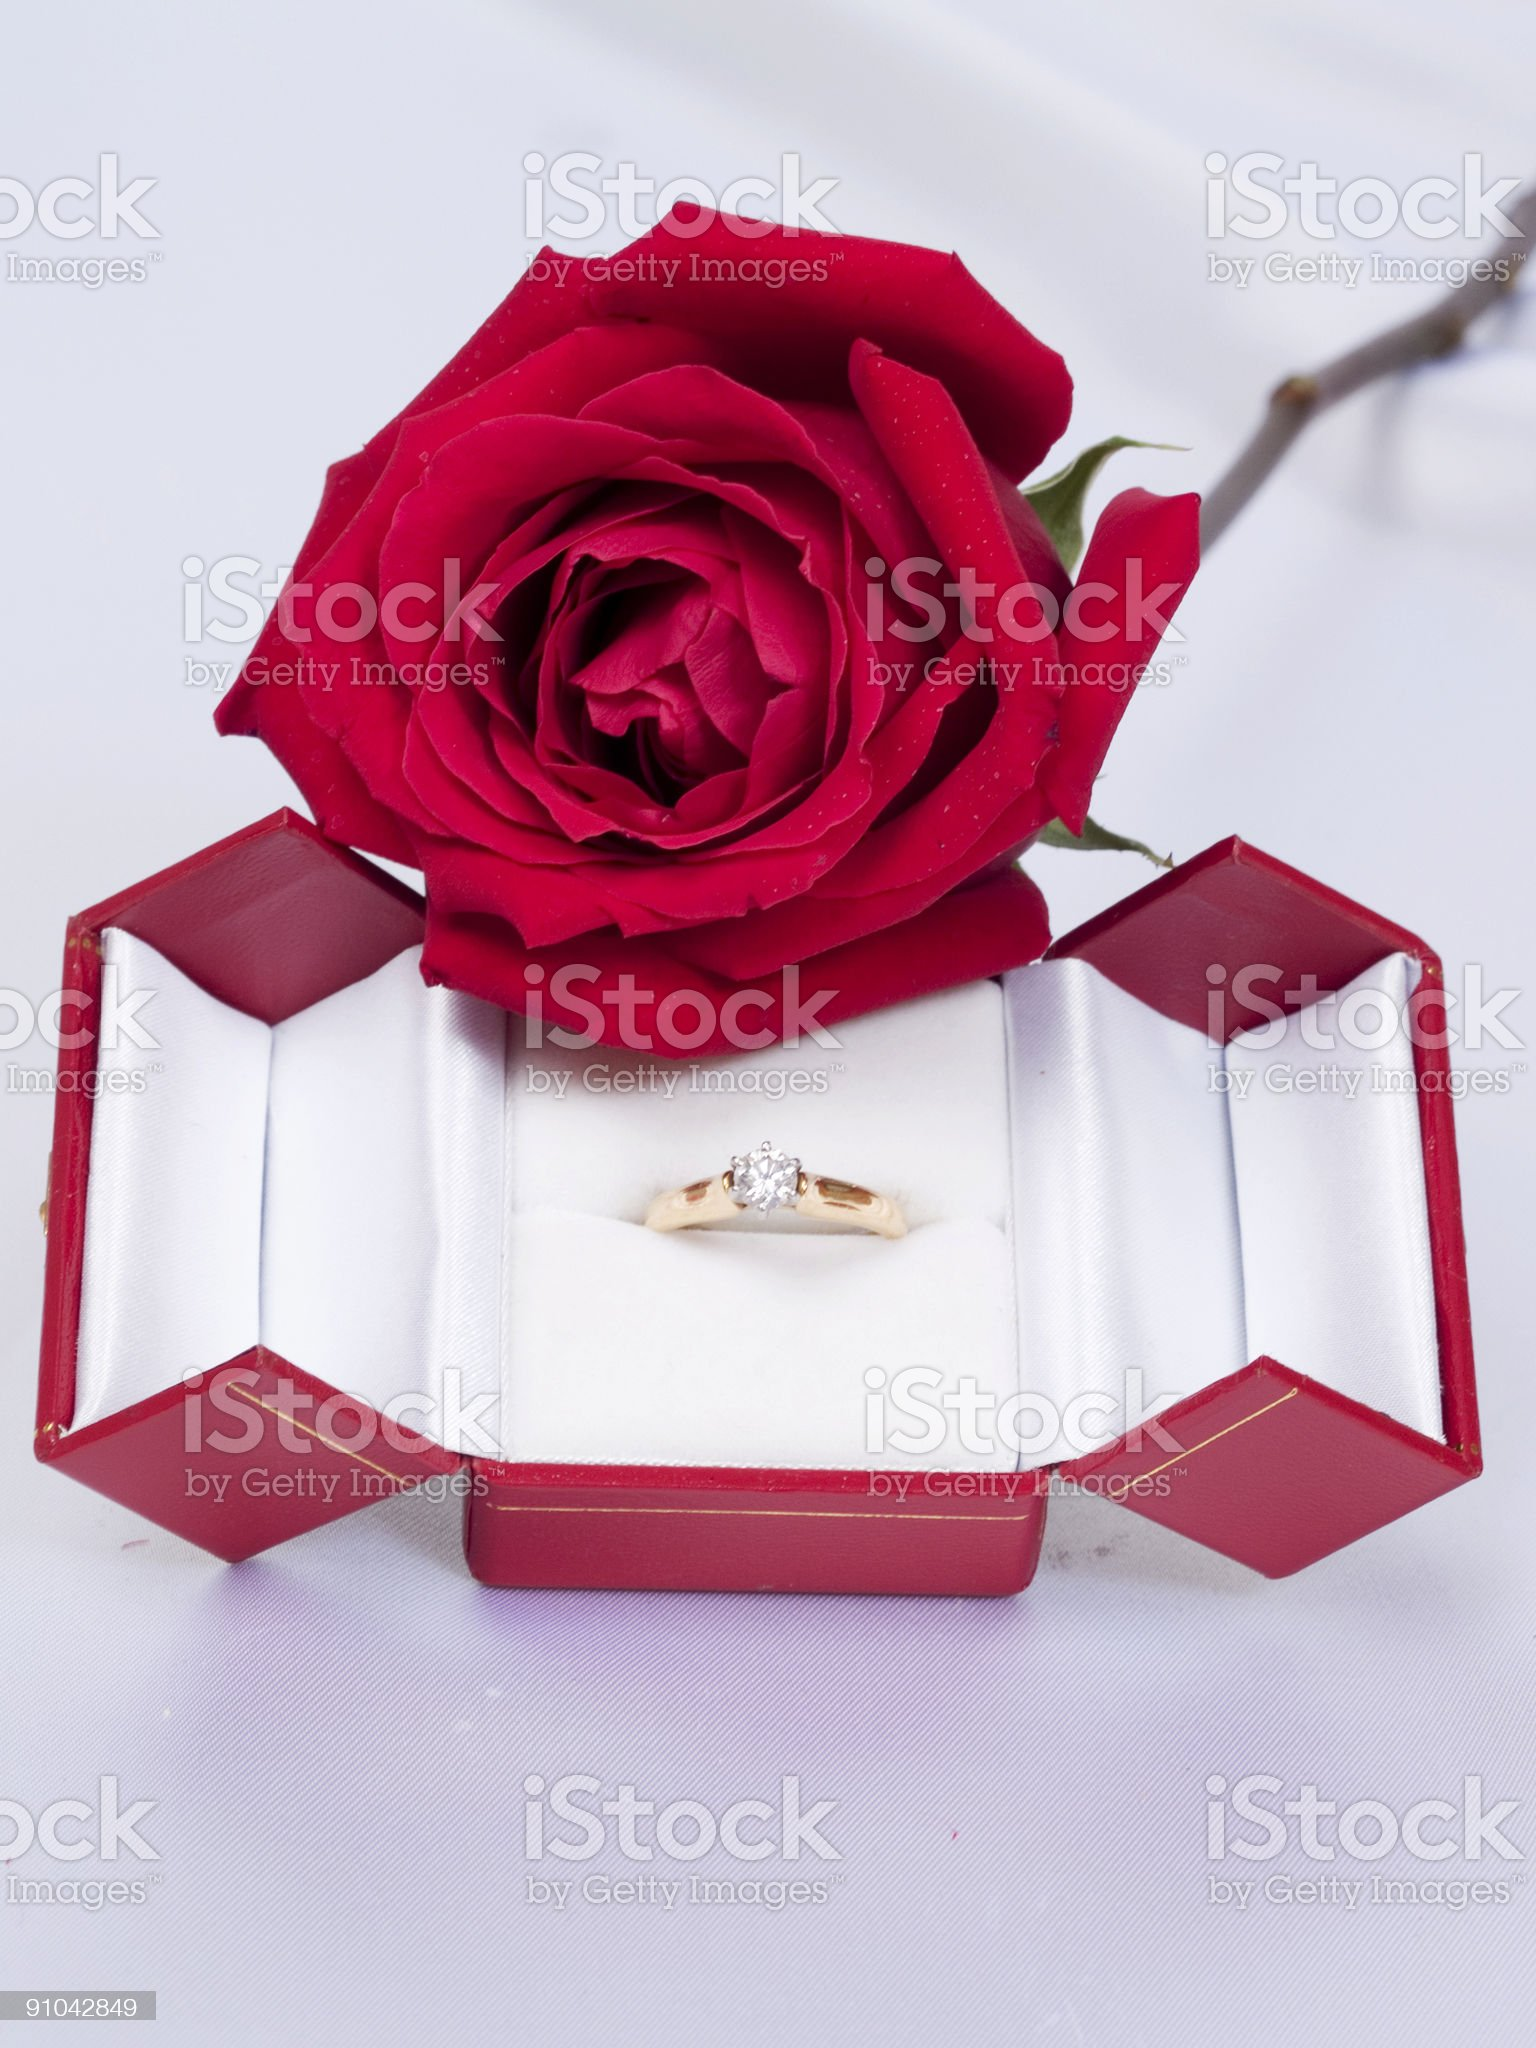 Romantic Proposal royalty-free stock photo